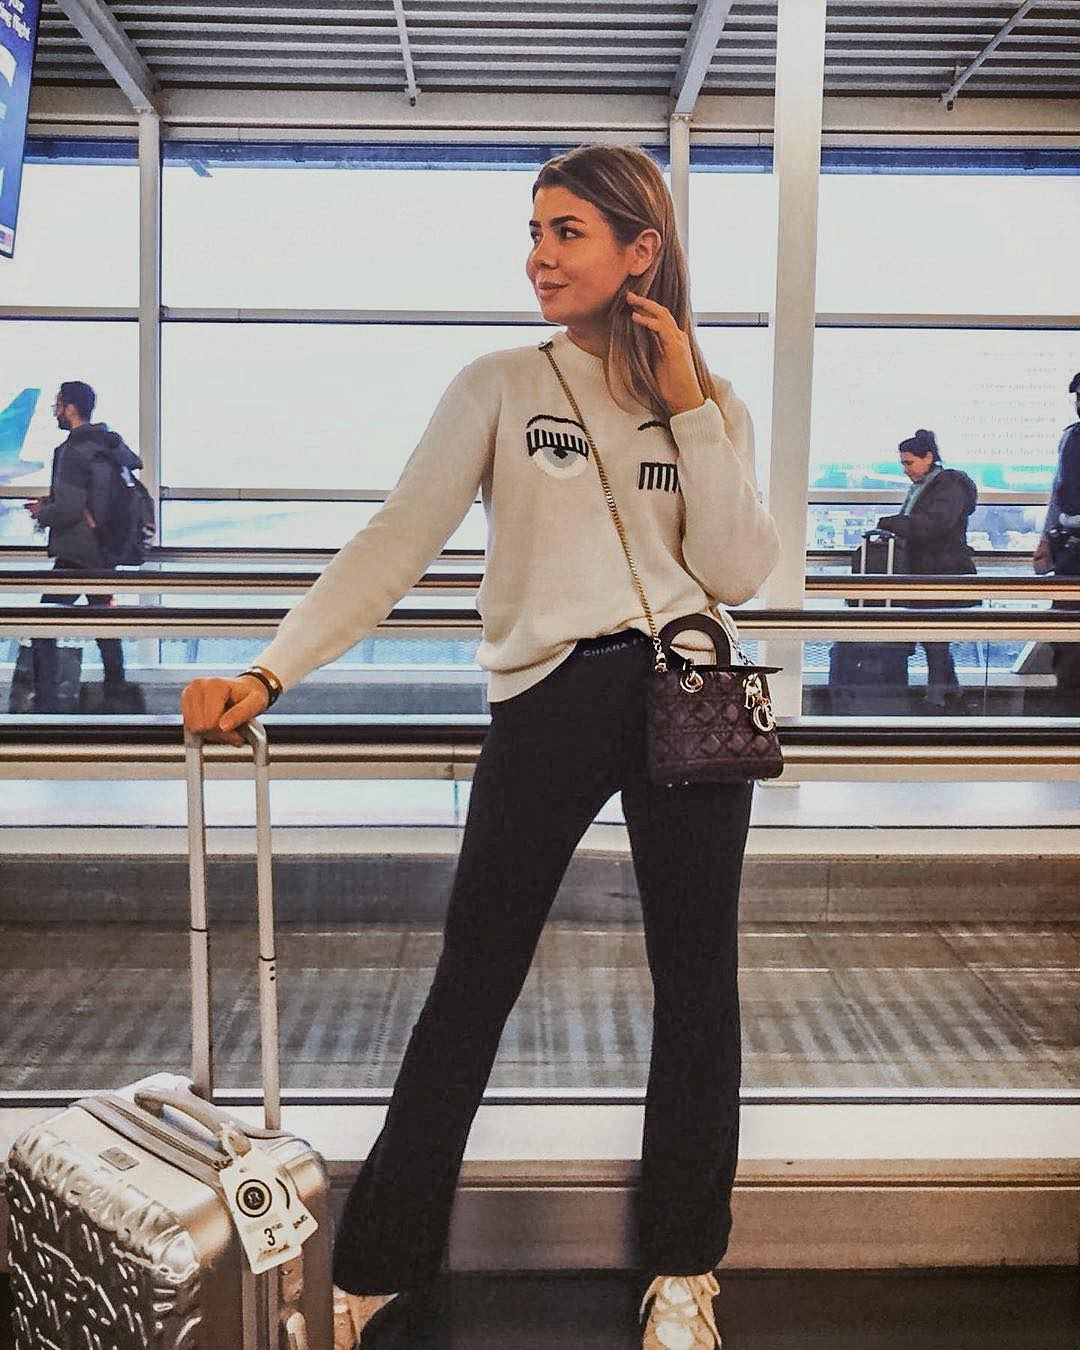 Airport Essentials: Cream Sweater, Black Joggers And Camel Sneakers 2020